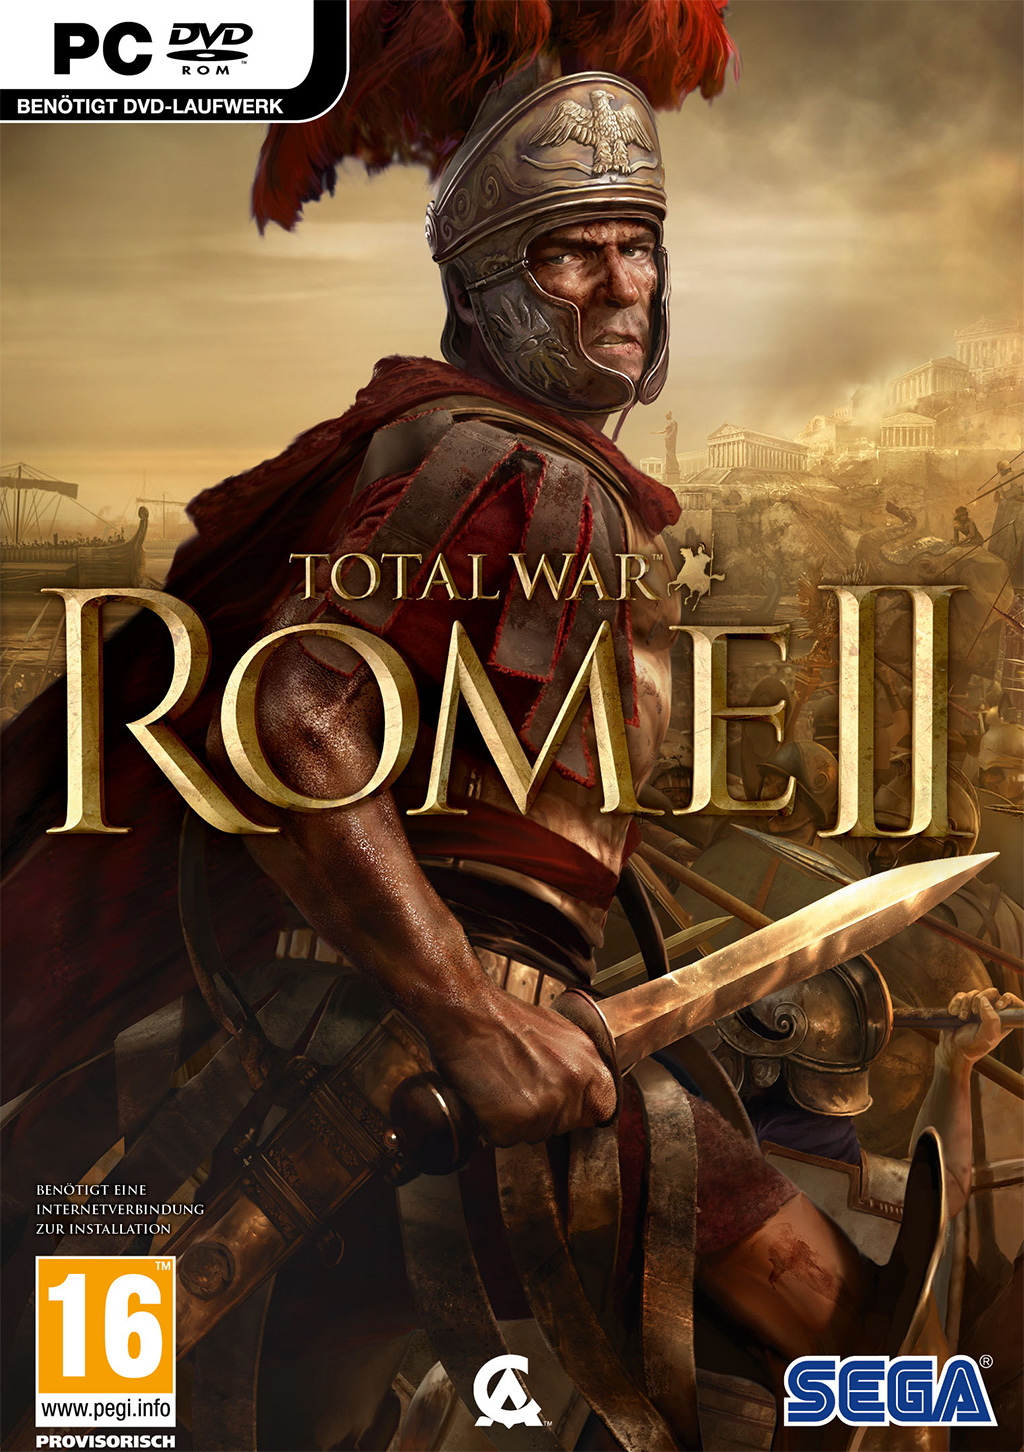 Total War Rome II Free Download, Total War Rome II Free Download